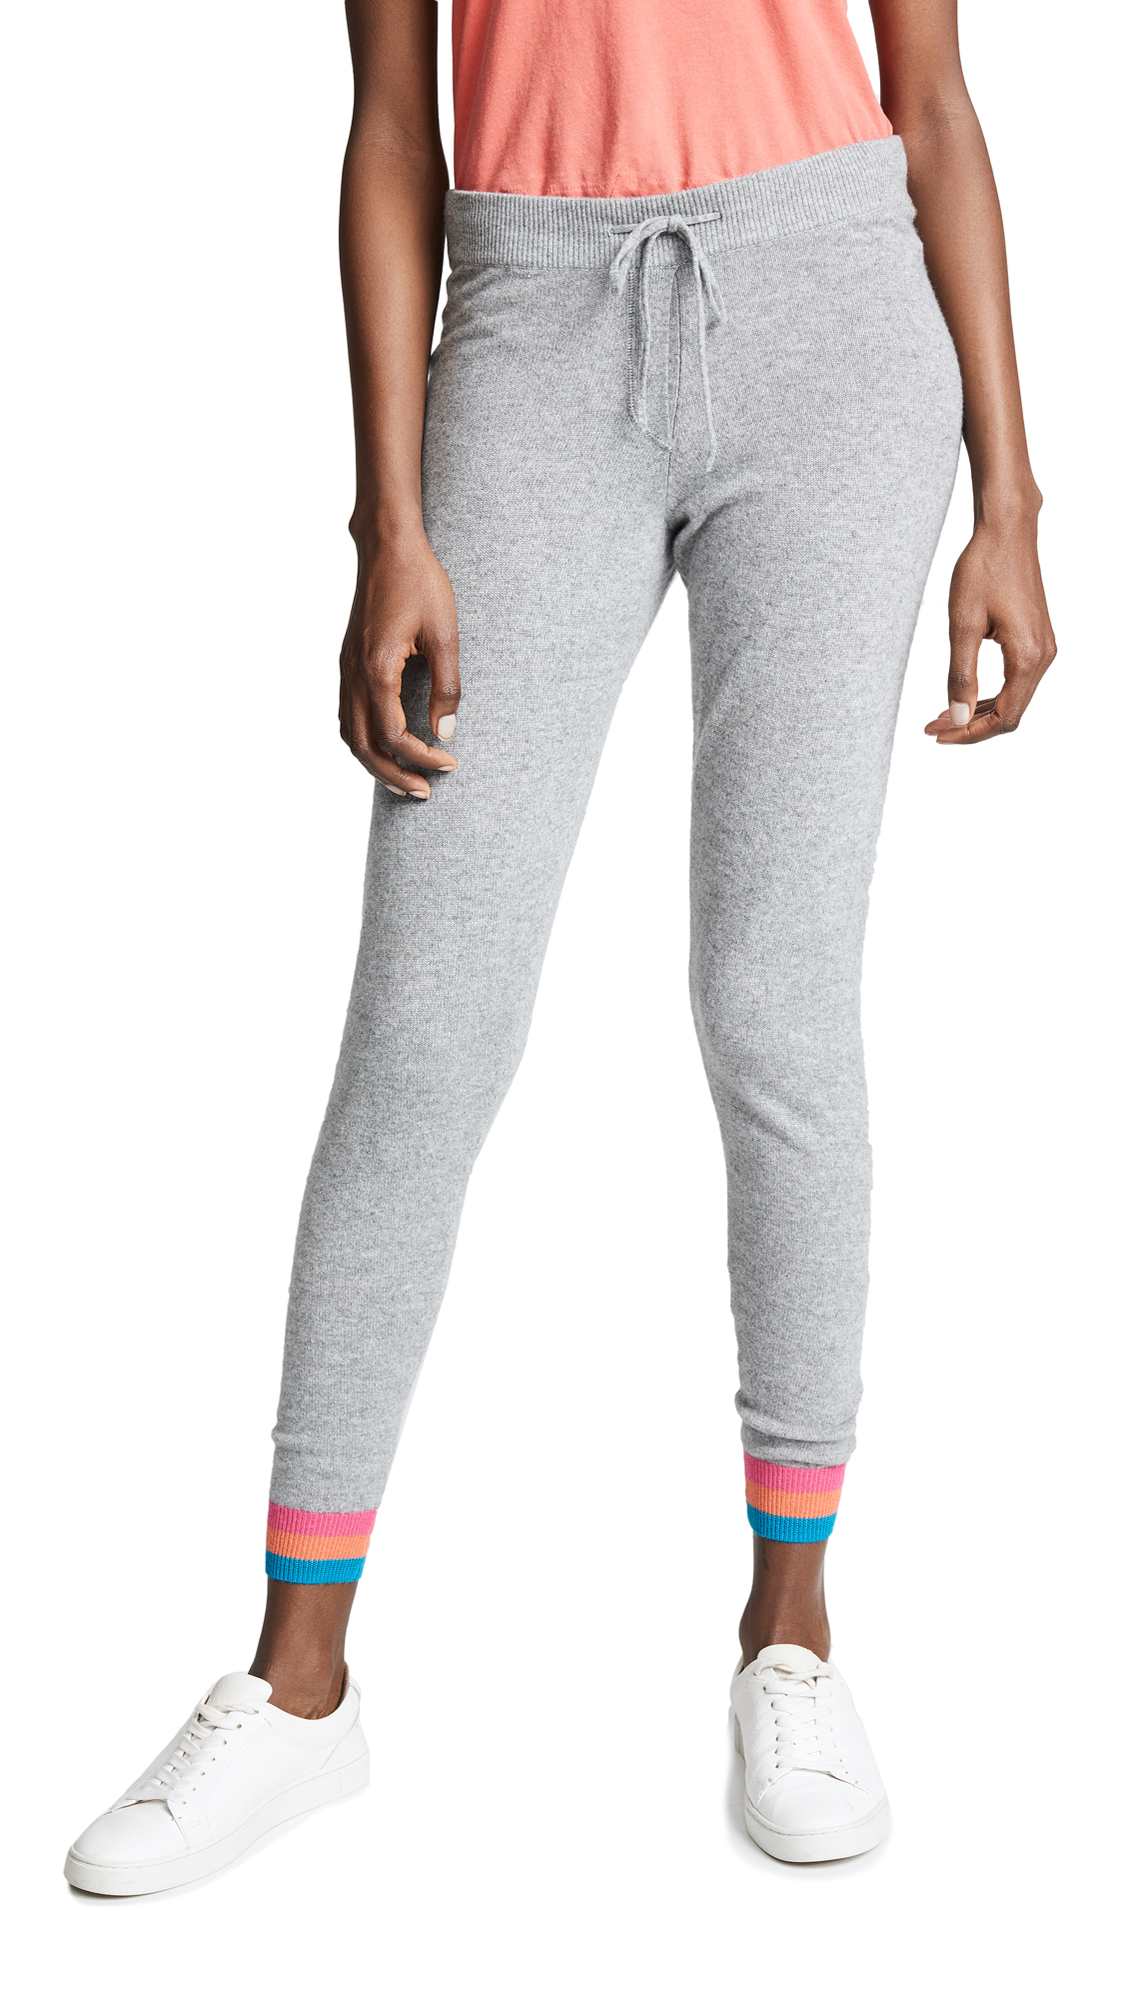 Chinti and Parker Stripe Cuff Track Pants - Light Grey Marl/Multi